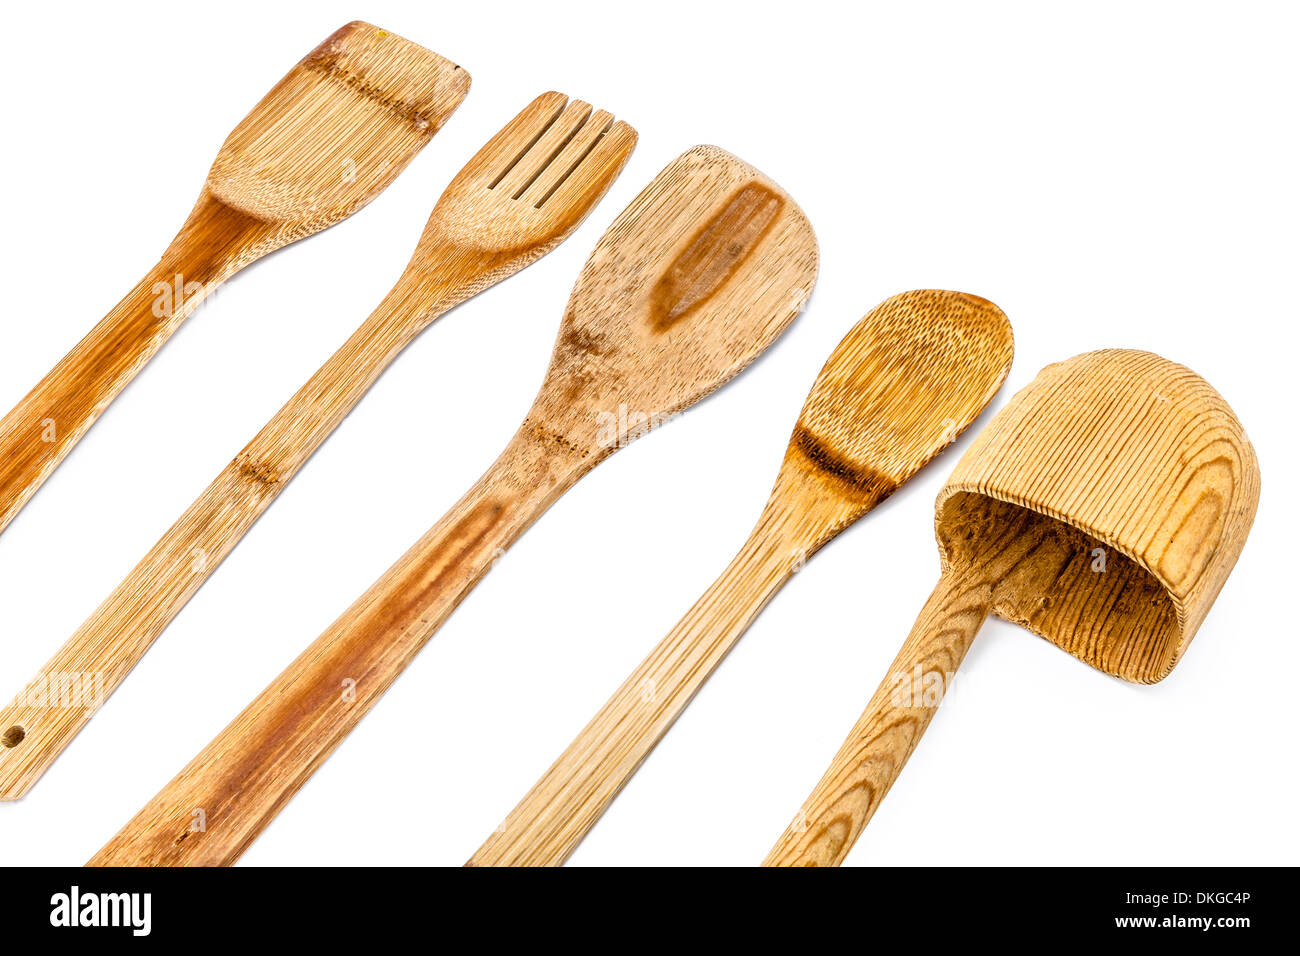 A composition of wooden kitchen utensils a white background Stock ...